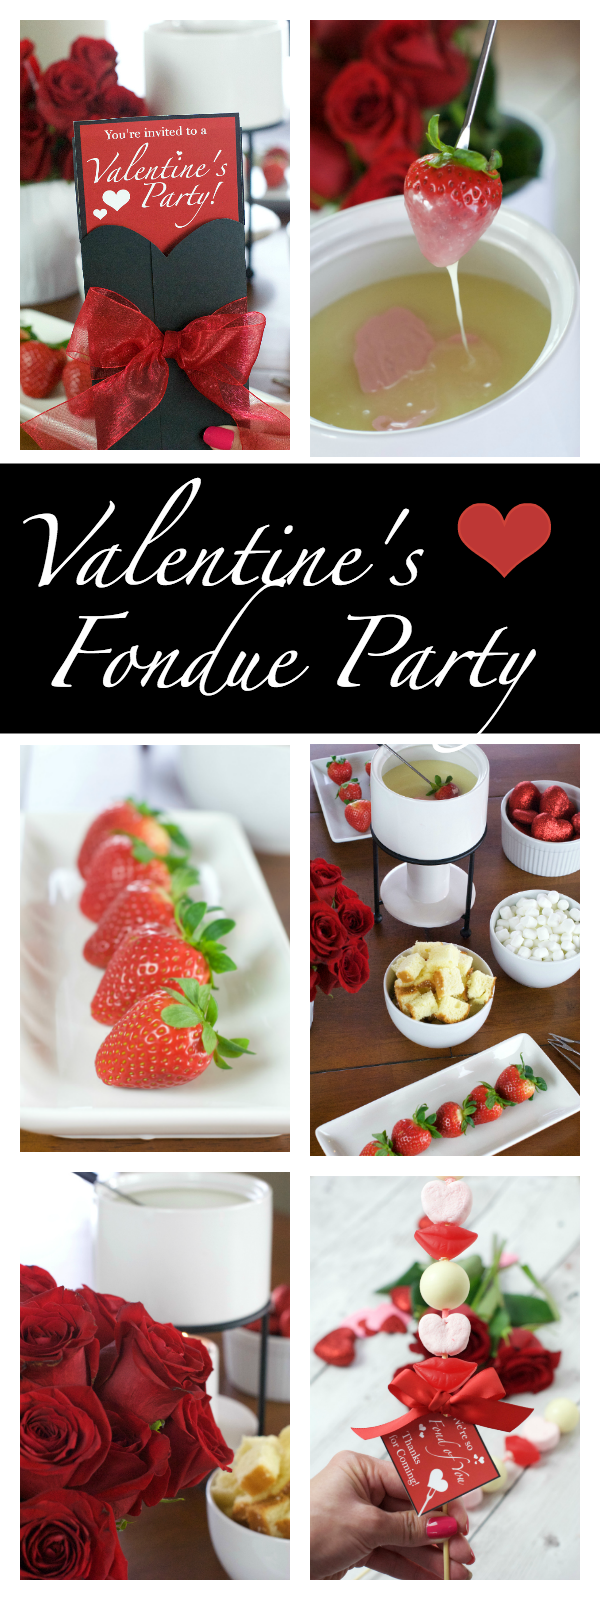 Valentine's Day Party for Couples: Fondue and Fun Couples Trivia Game...everything you need for a fun Valentine's Day party. Food, games, and fun...this Valentine's Day fondu party had it all! #fondue #valentinesparty #valentinesdayparty #couplestrivia #fondueparty